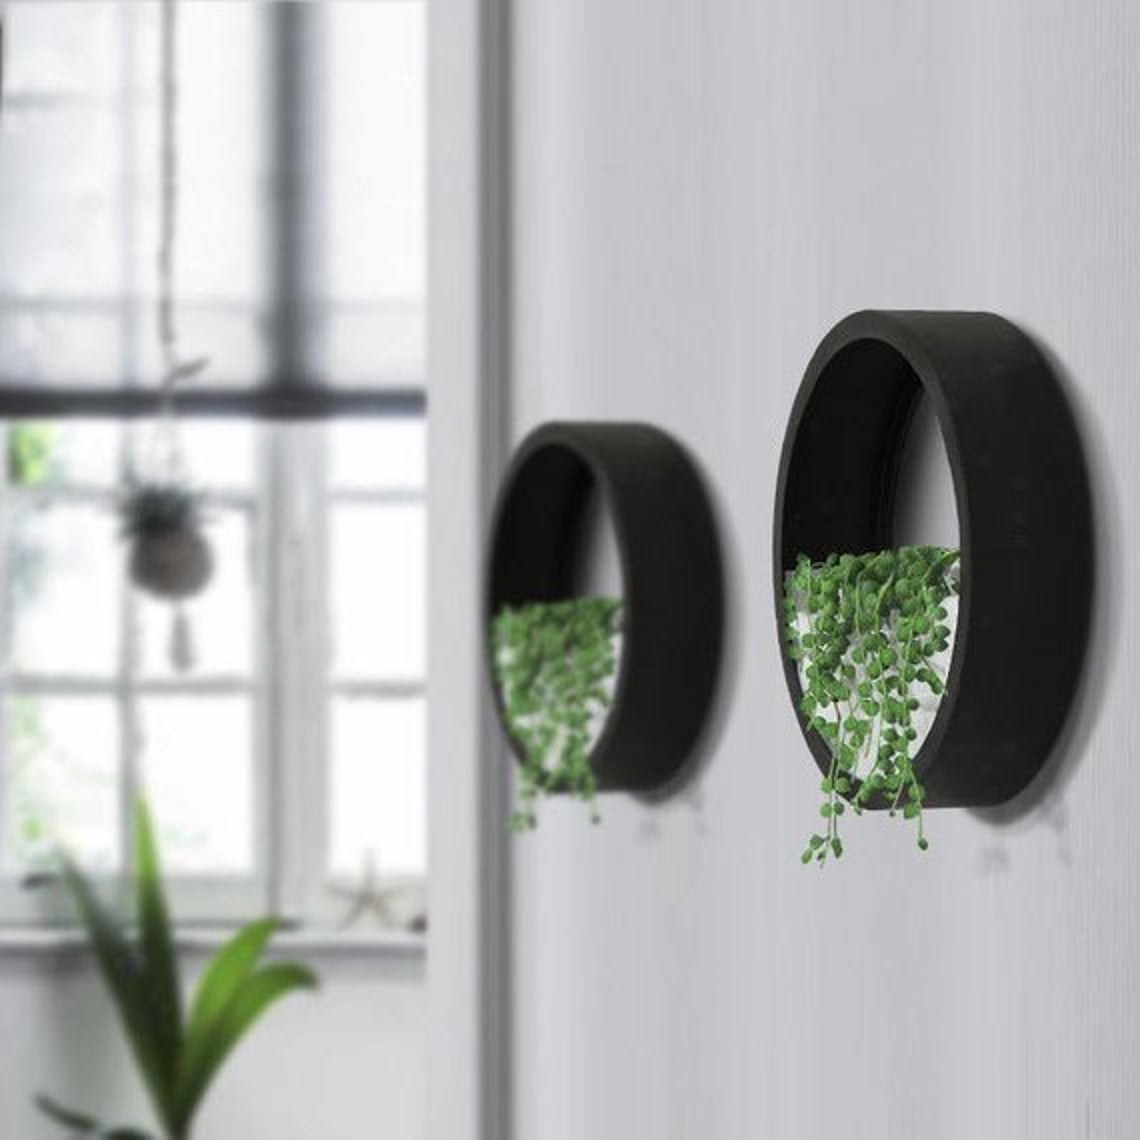 A pair of round wall planters with baby's tears plants hanging out of them